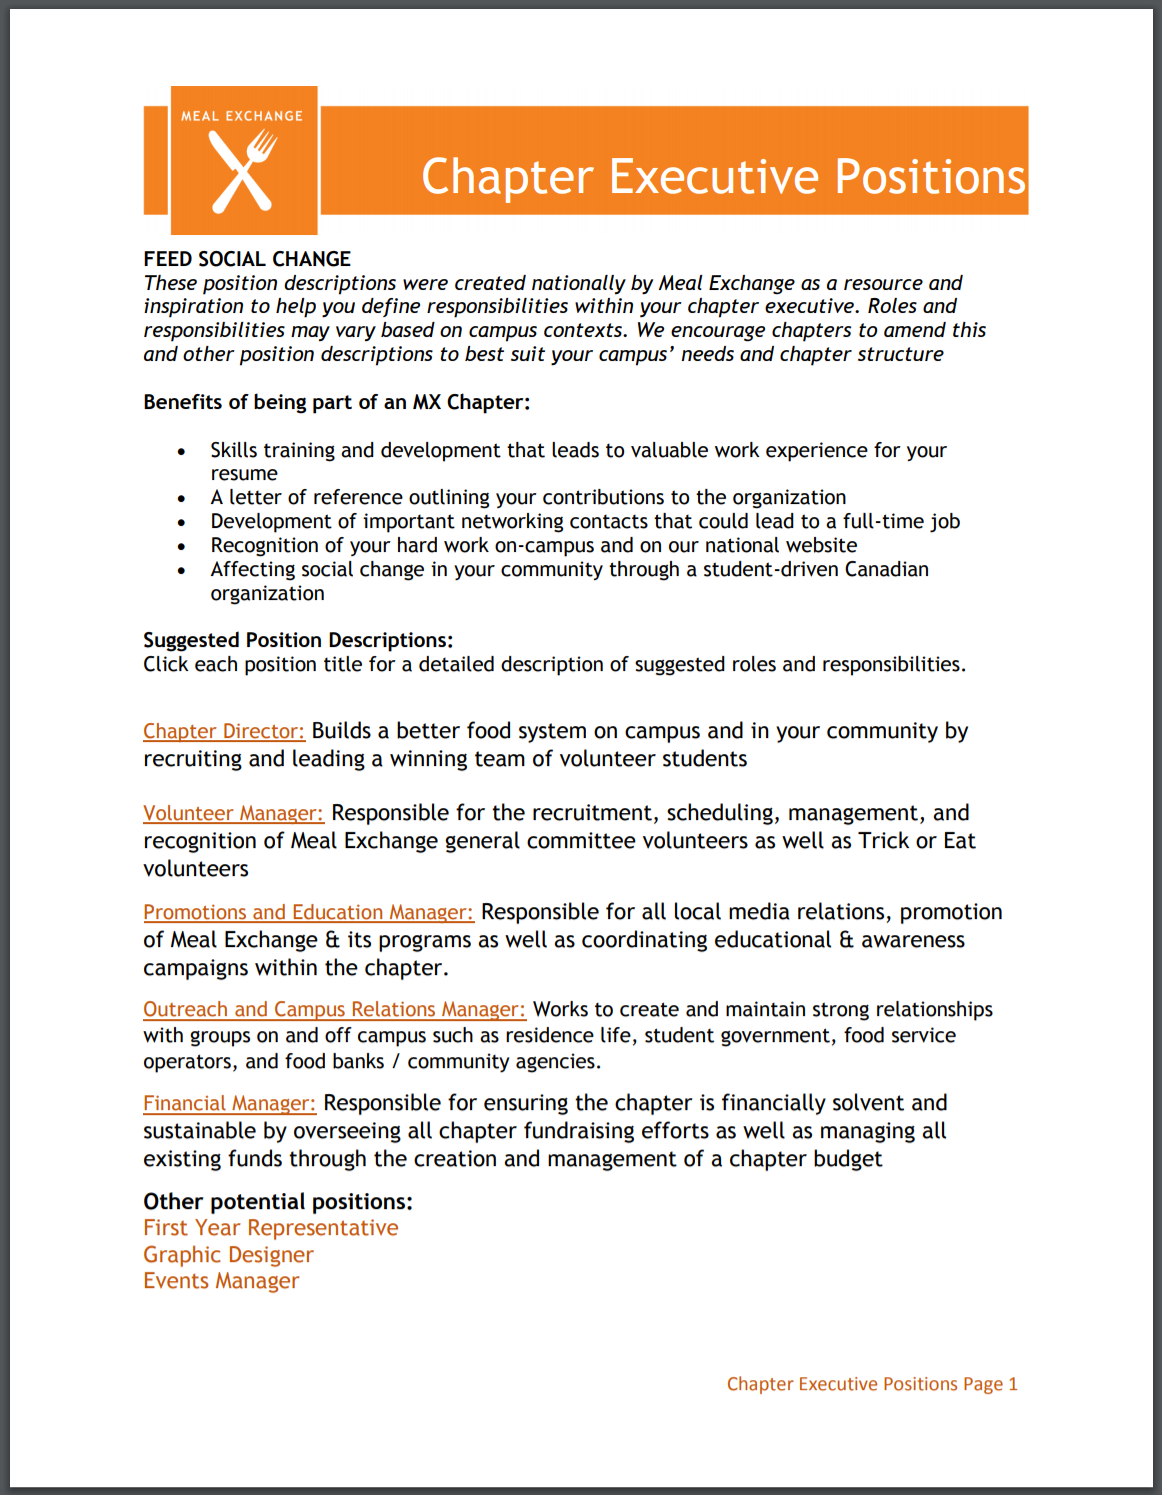 chapter executive position cover.PNG